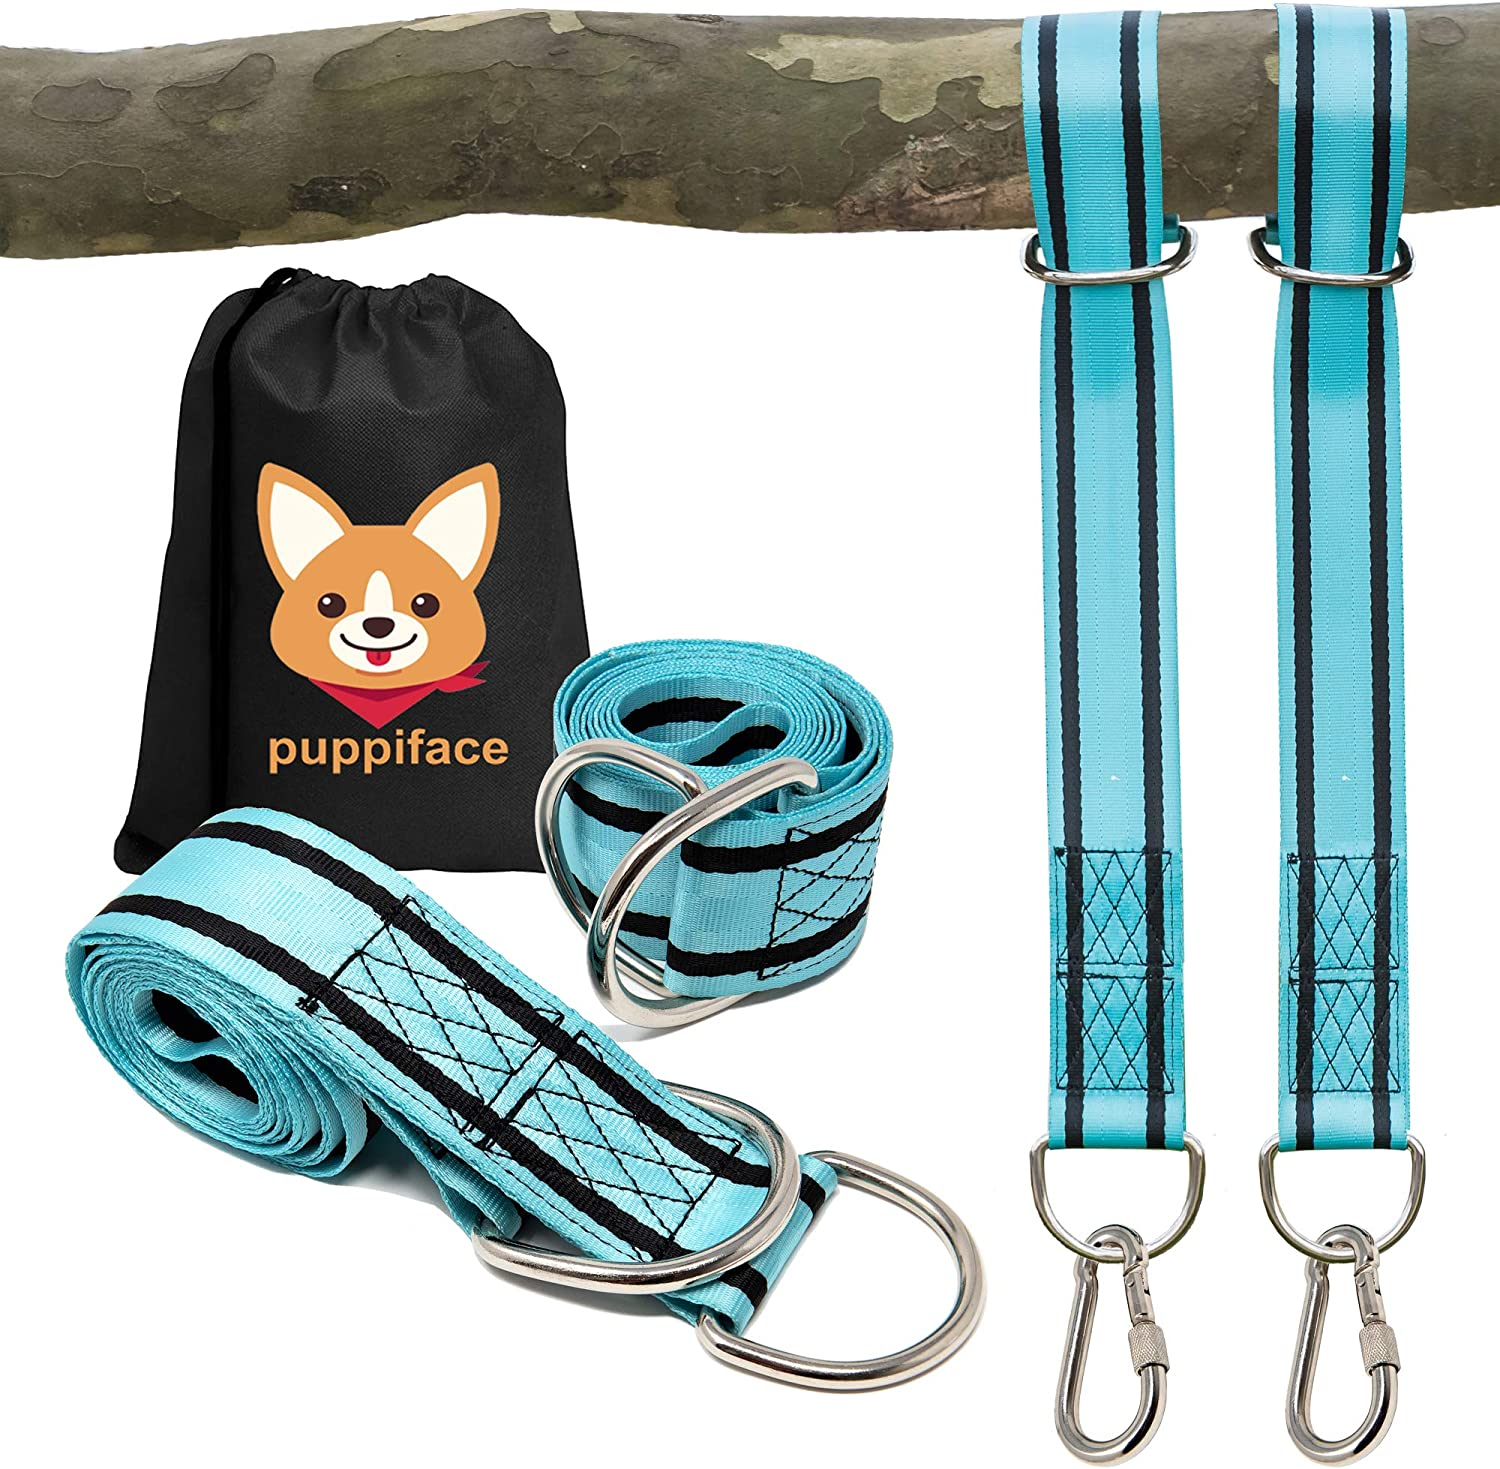 puppiface Tree Swing Hanging Straps Kit - Extra Strong 6 ft. Adjustable Straps Hold 4400 lbs - Heavy Duty Safety Lock Stainless Steel Carabiners with Storage Bag - Great for Hammock & All Swing Types